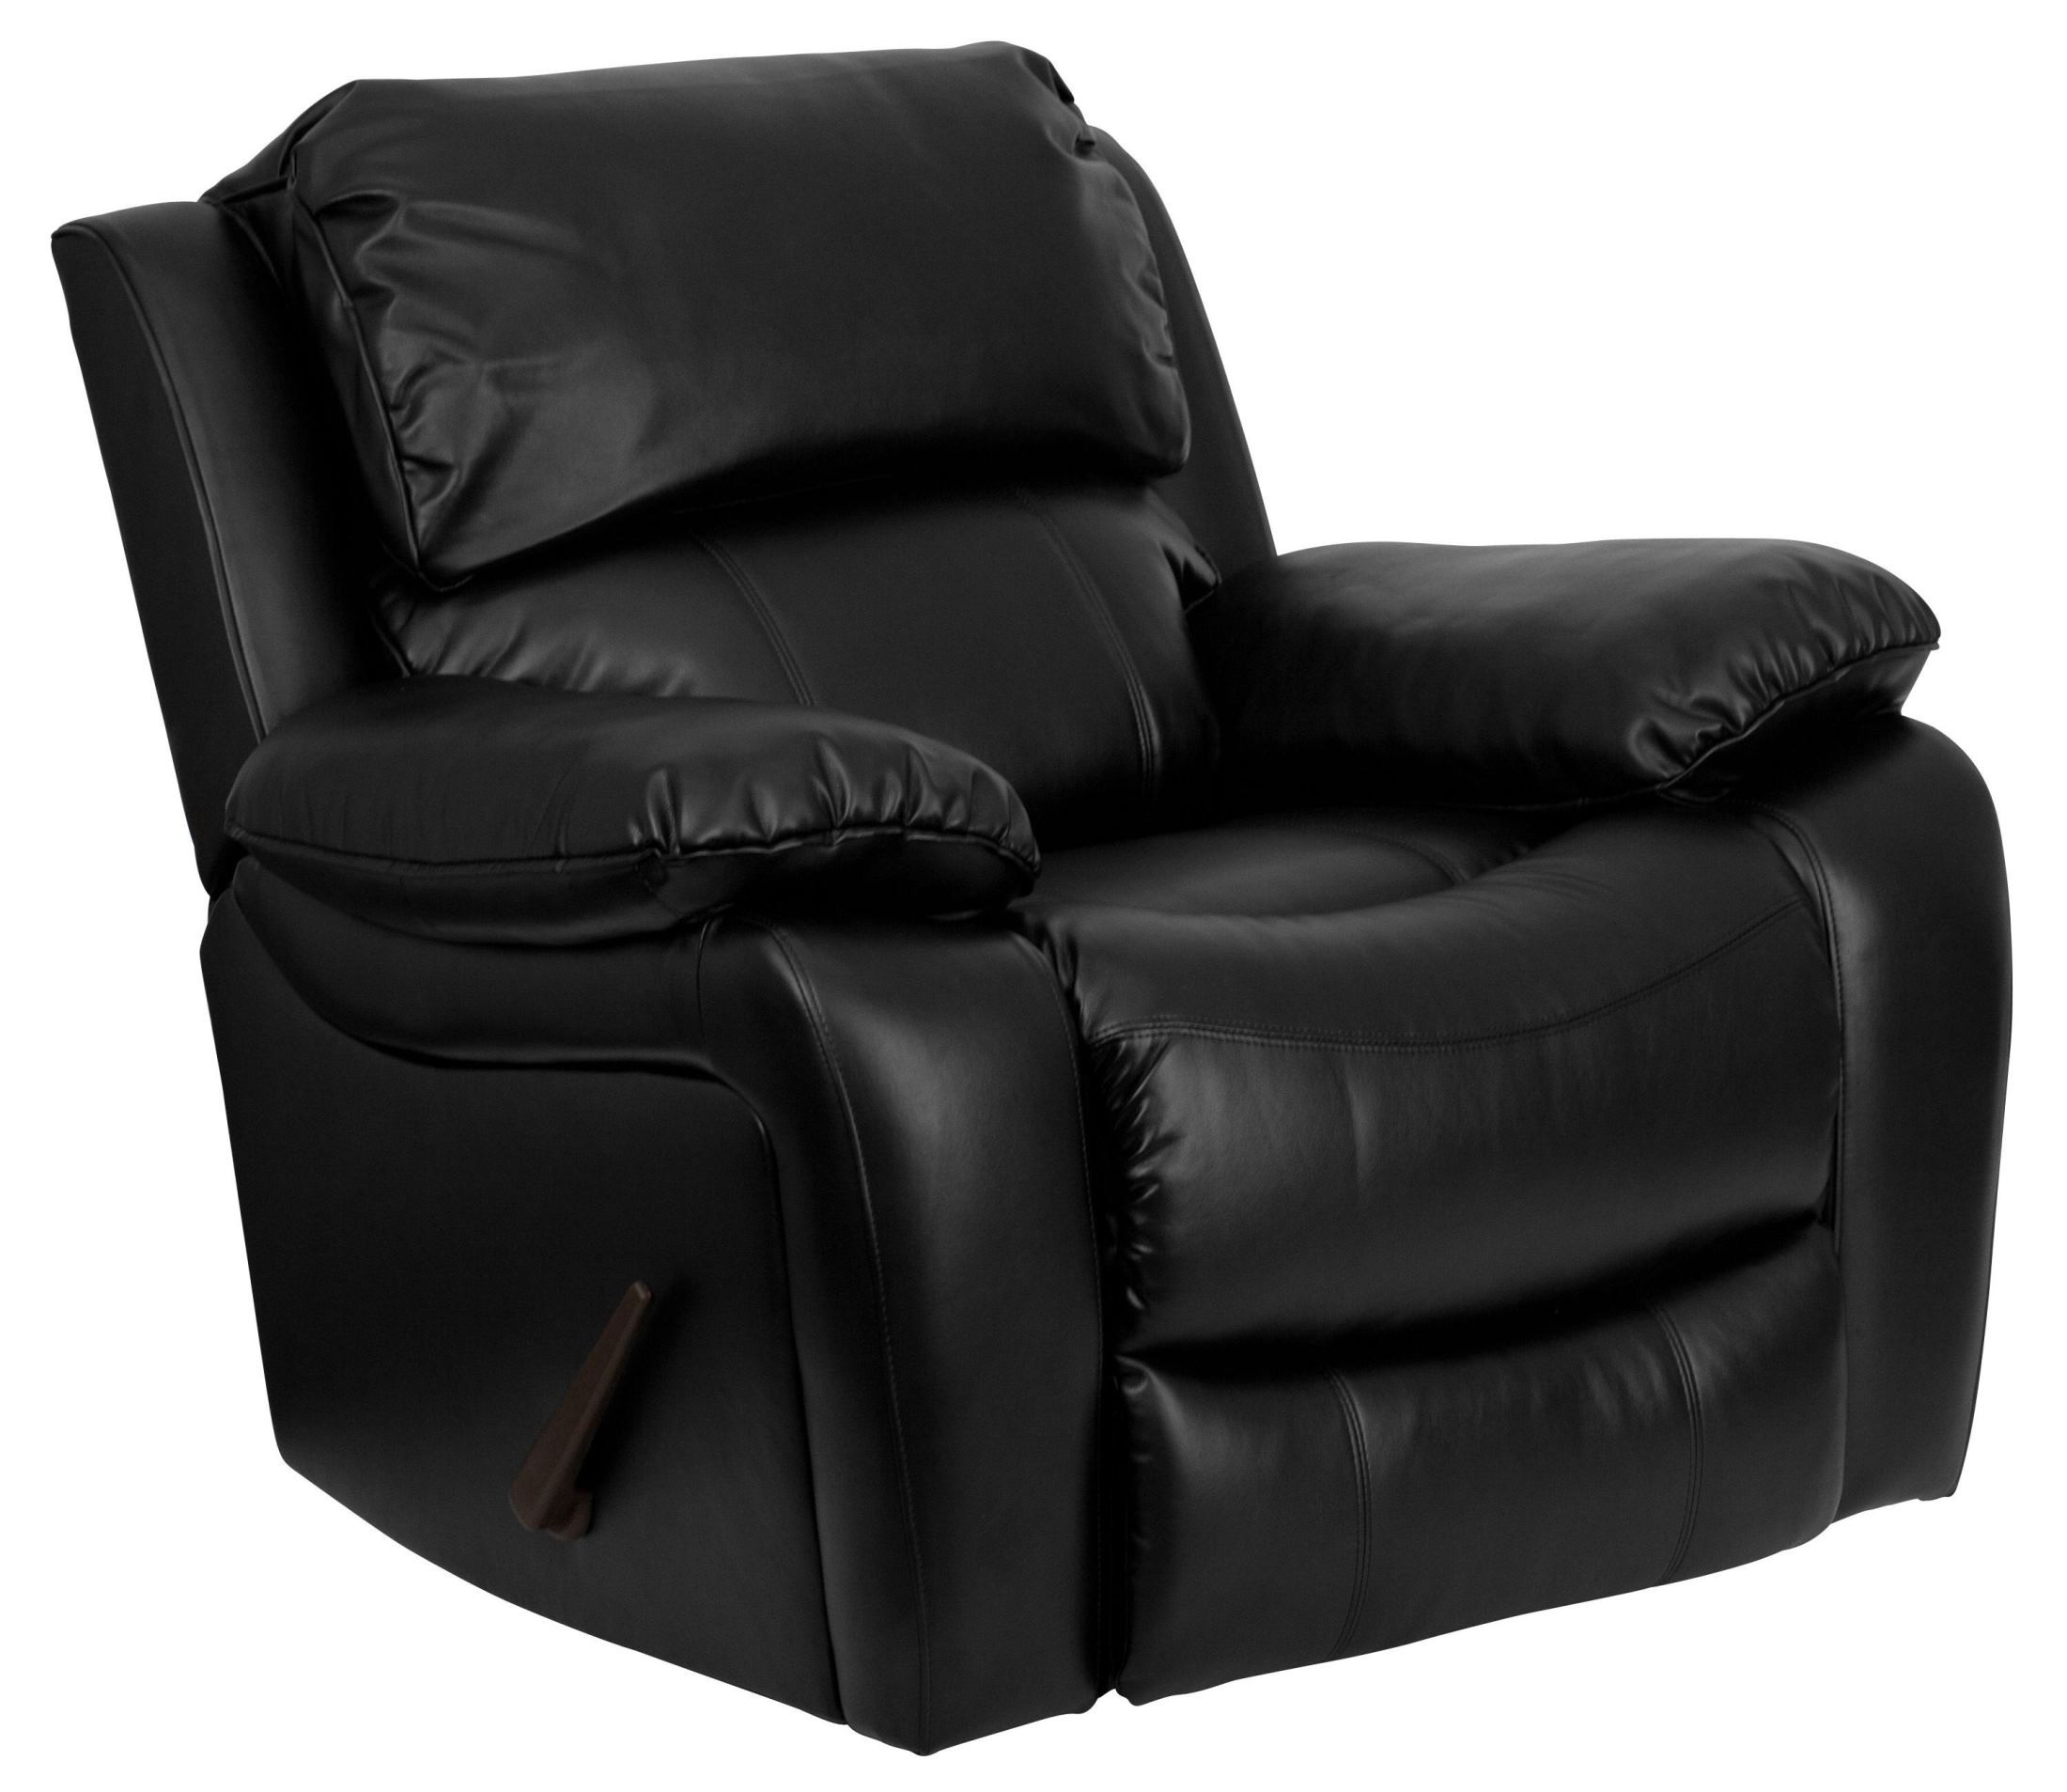 Black Leather Rocker Recliner From Renegade Coleman